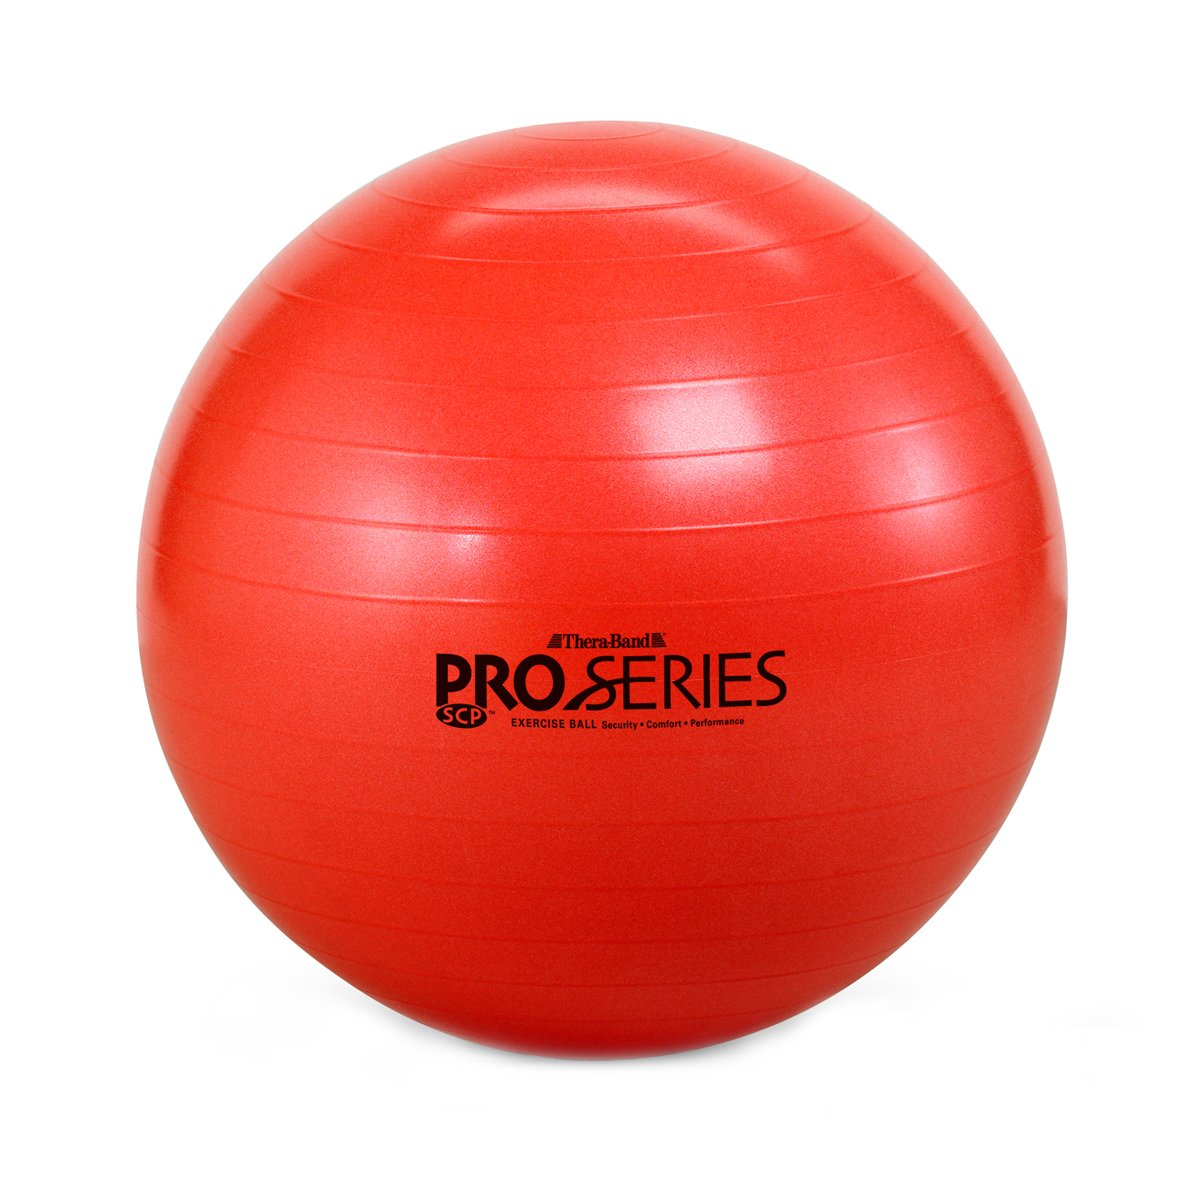 TheraBand 23025 Thera-band Red Slow Deflate System Pro-series Anti-burst Exercise Ball